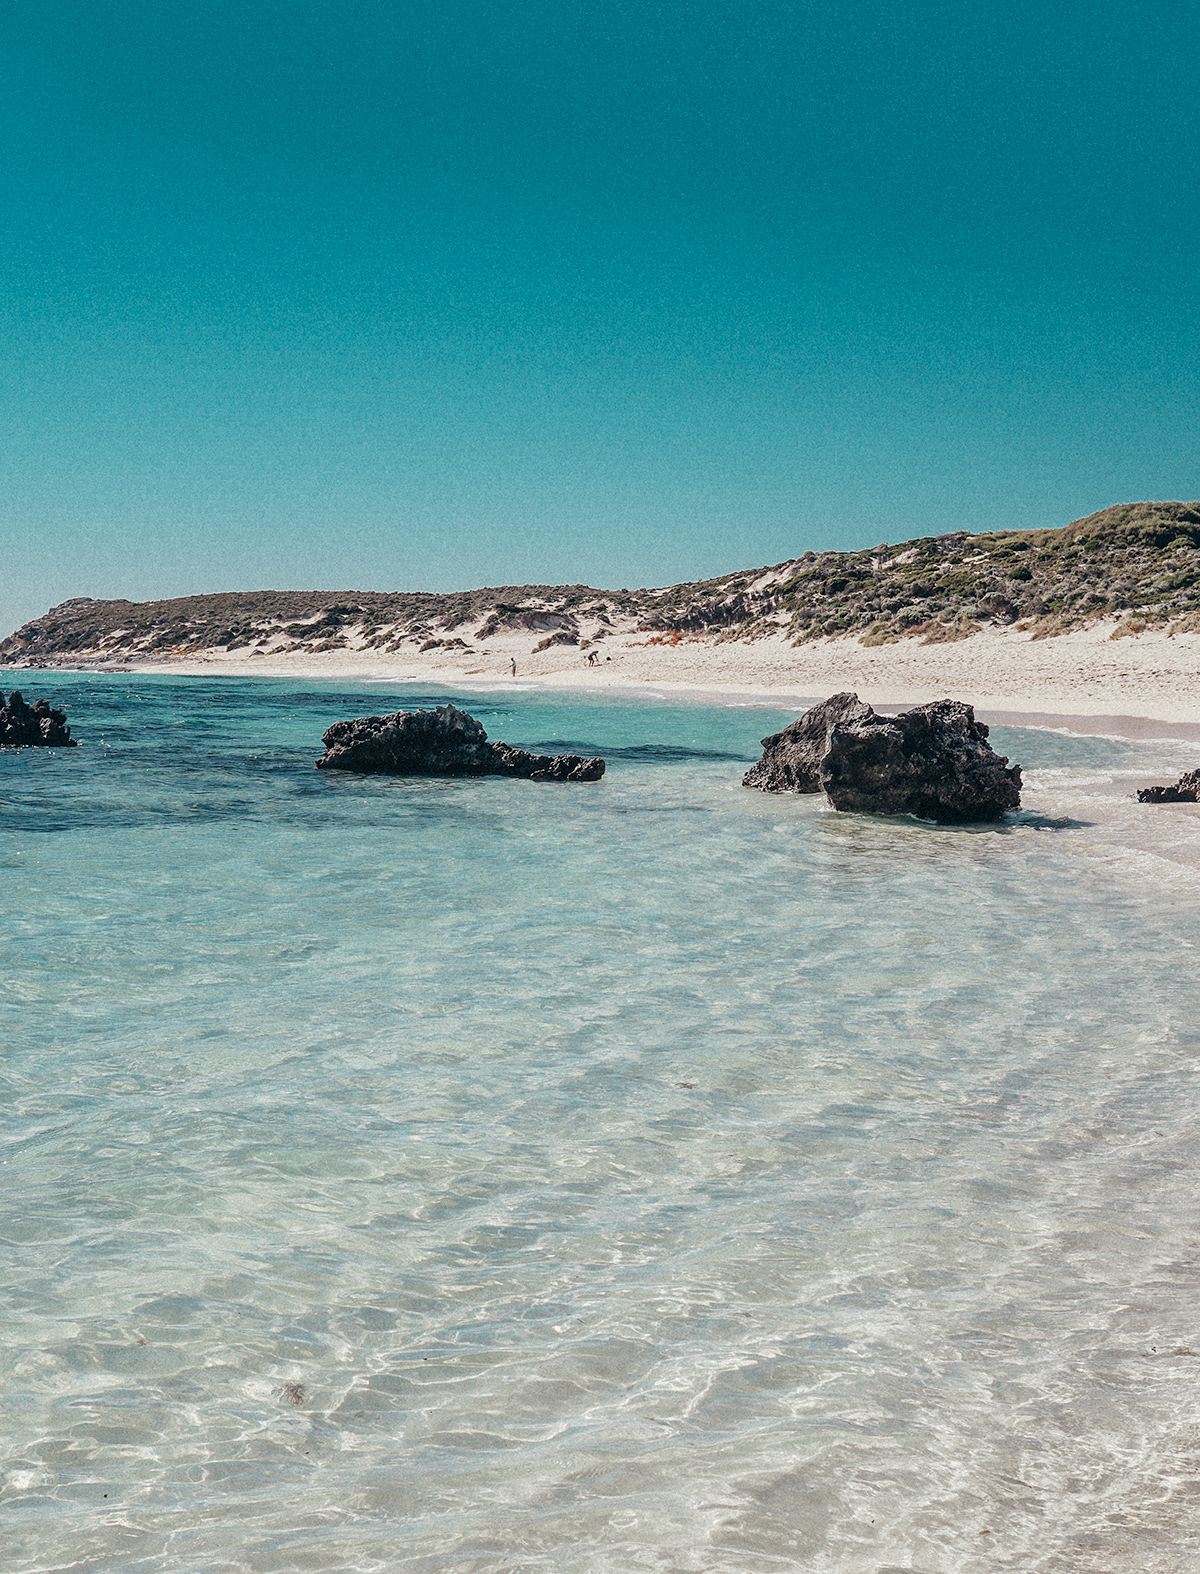 Turquoise water in Rottnest Island